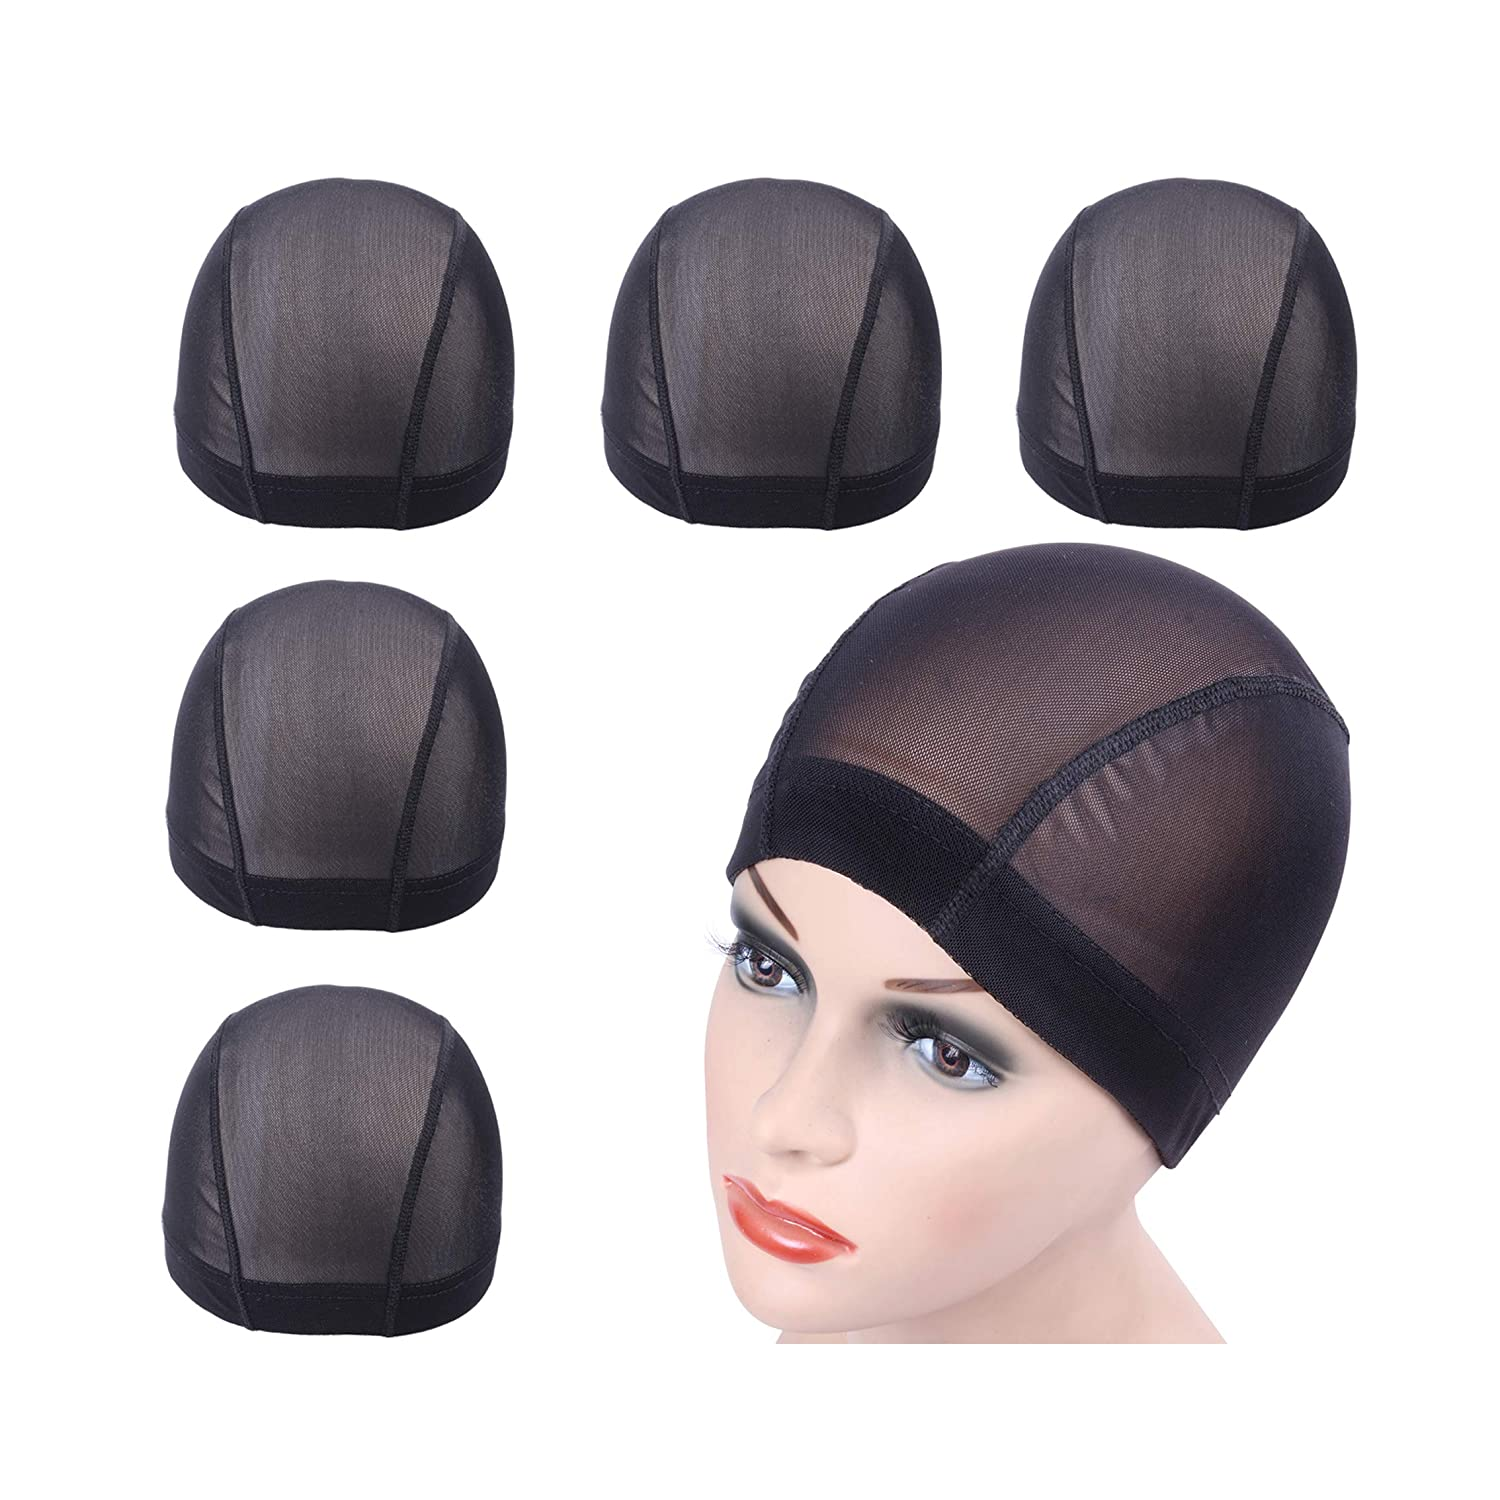 5 pcs High order lot Black Mesh Cap Max 45% OFF for Wigs Wig Stretchable Hai Making